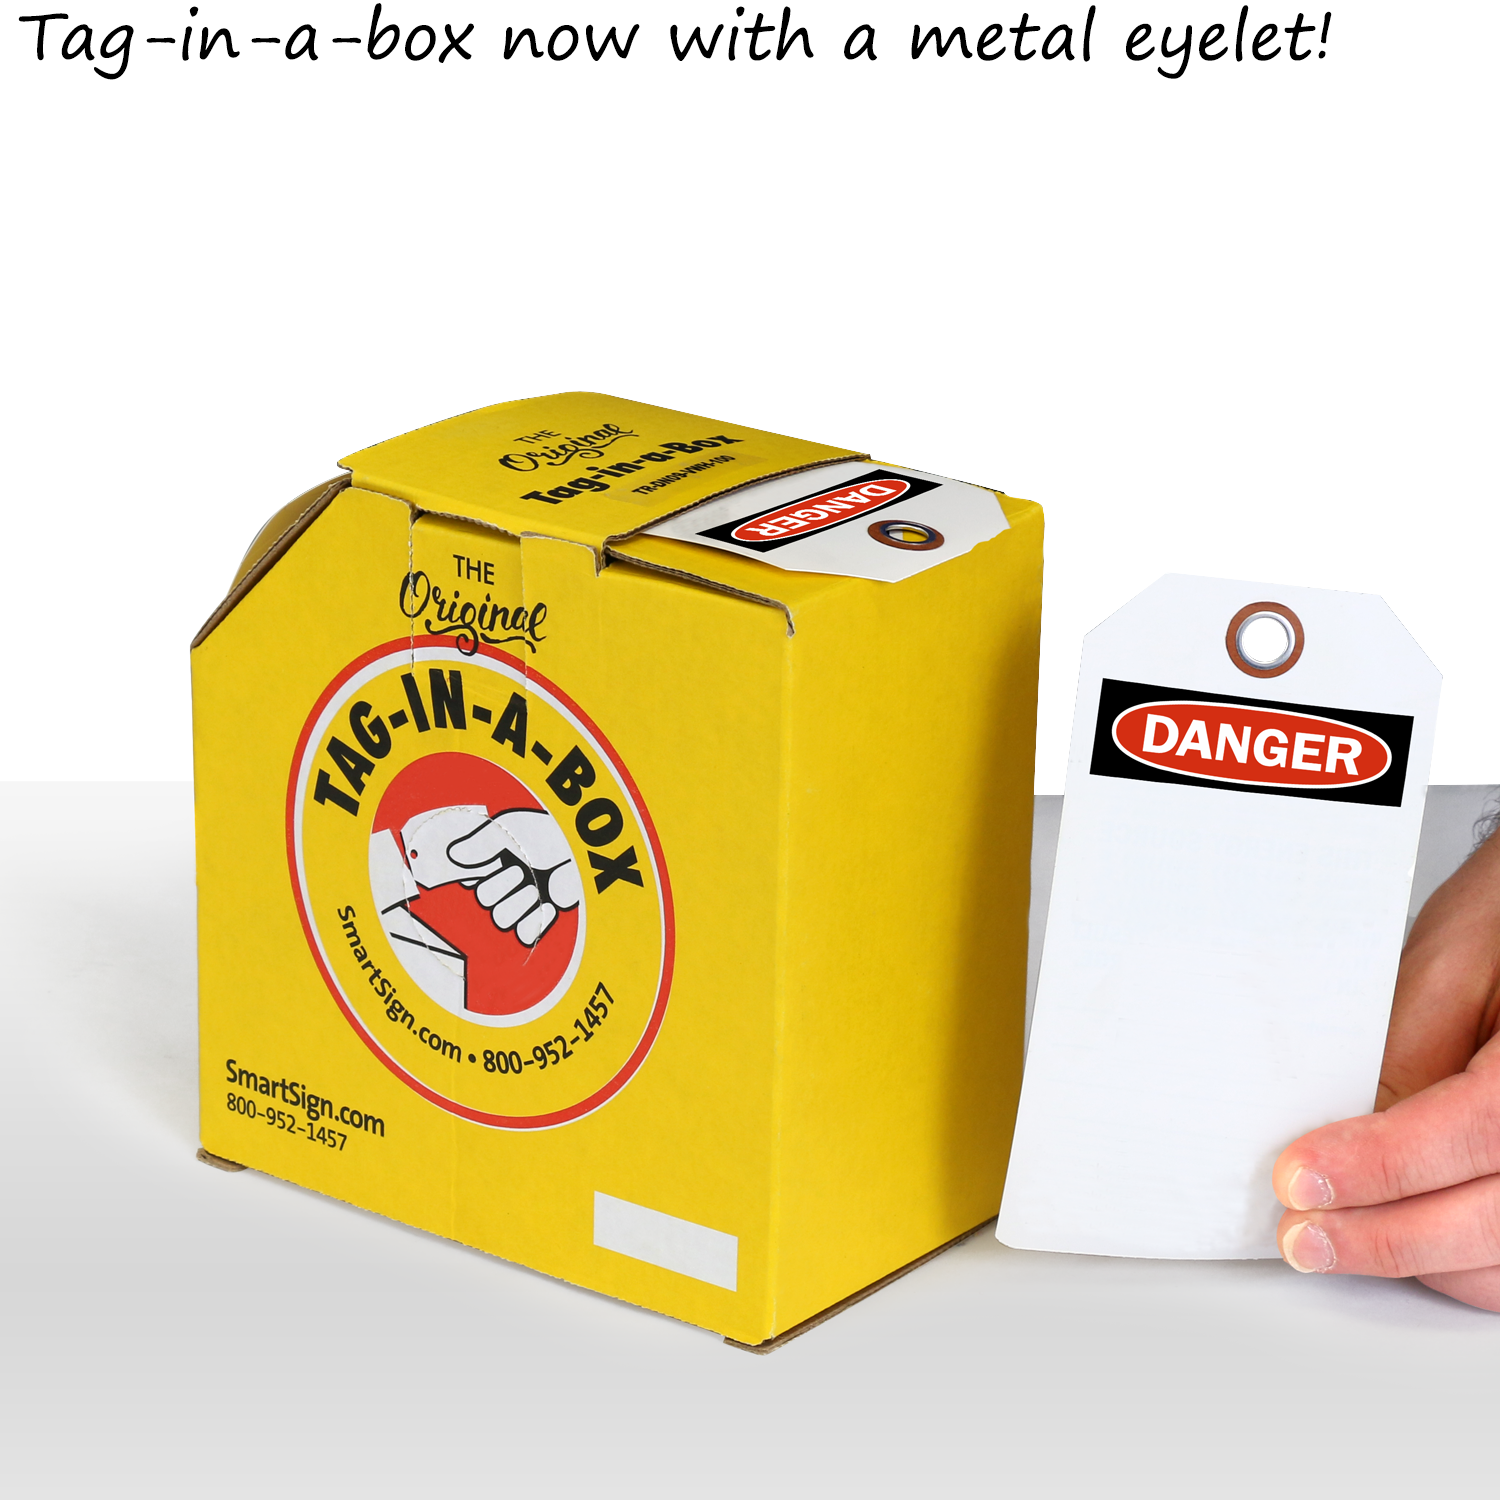 Blank Tag With Danger Header